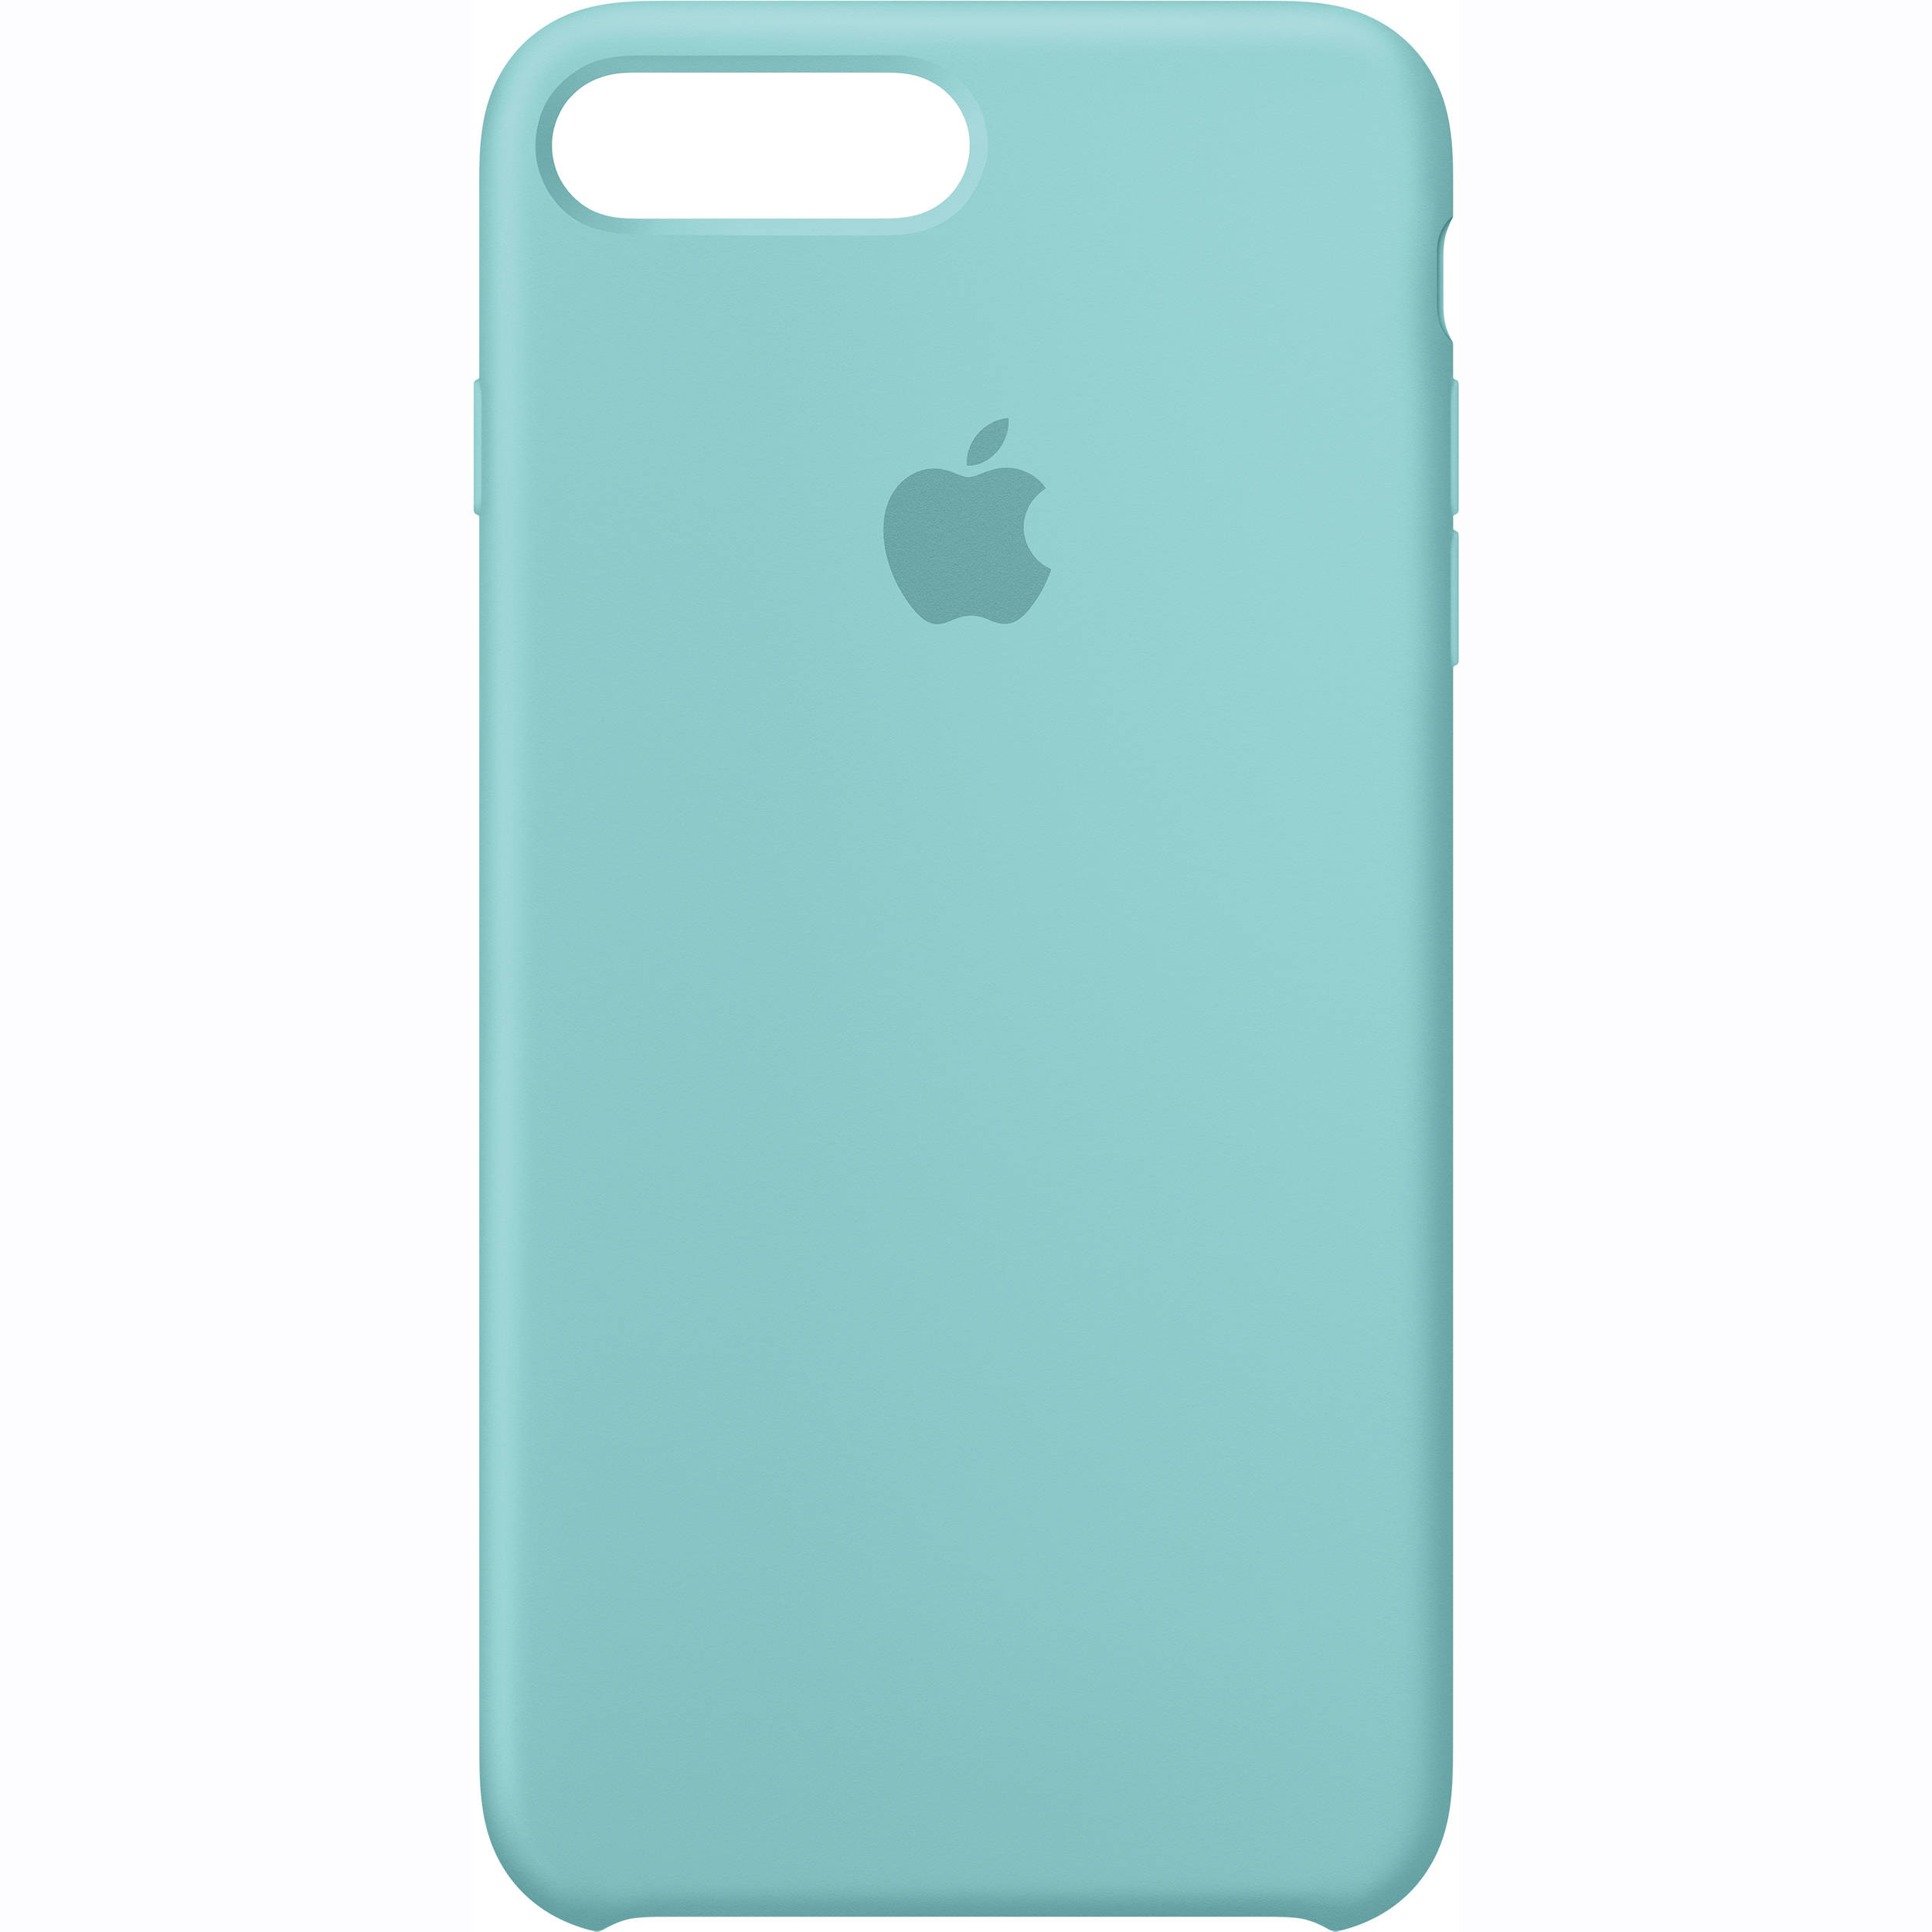 apple iphone 8 plus coque silicone